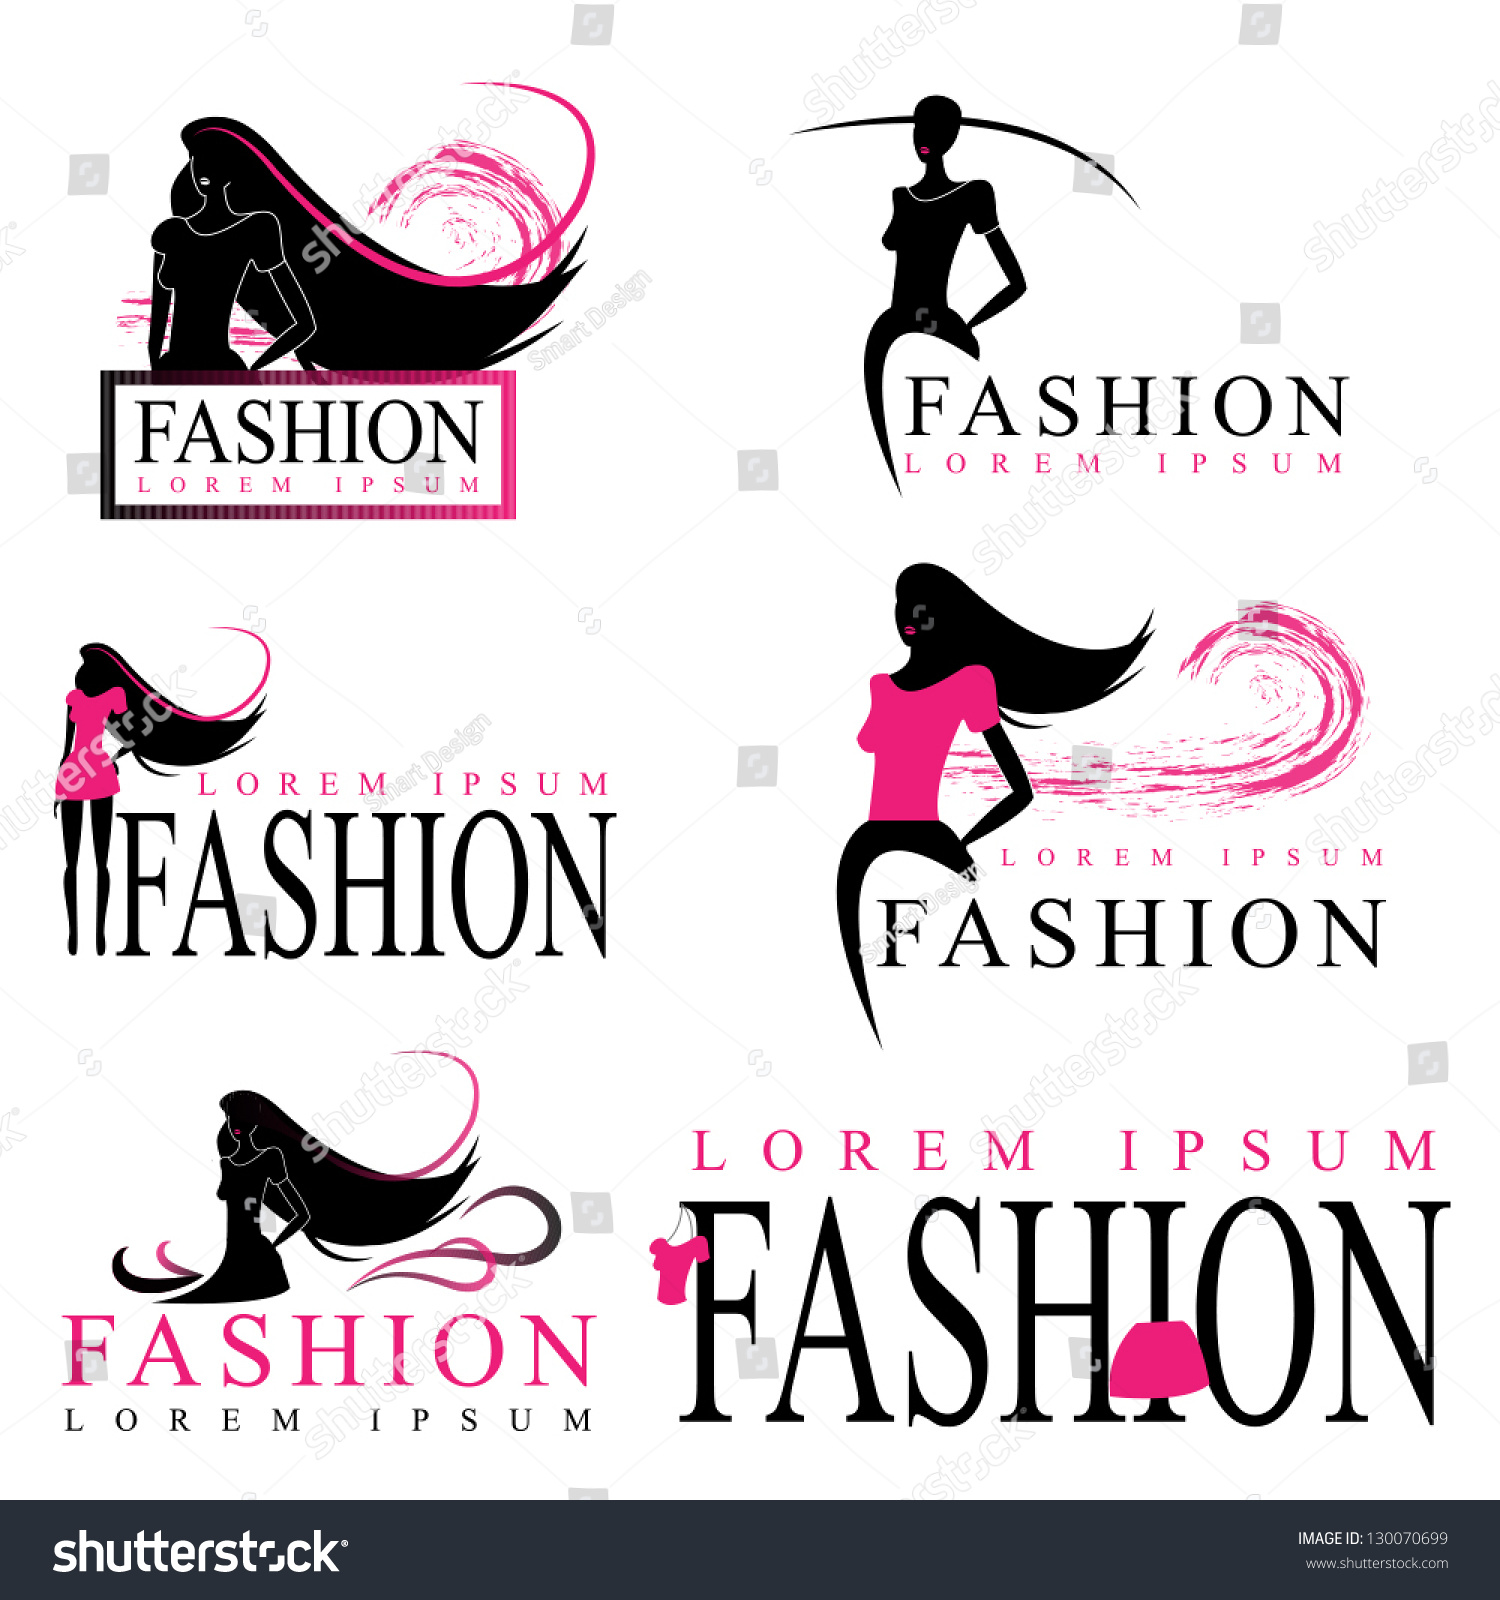 Fashion Woman Silhouette Isolated On White Stock Vector